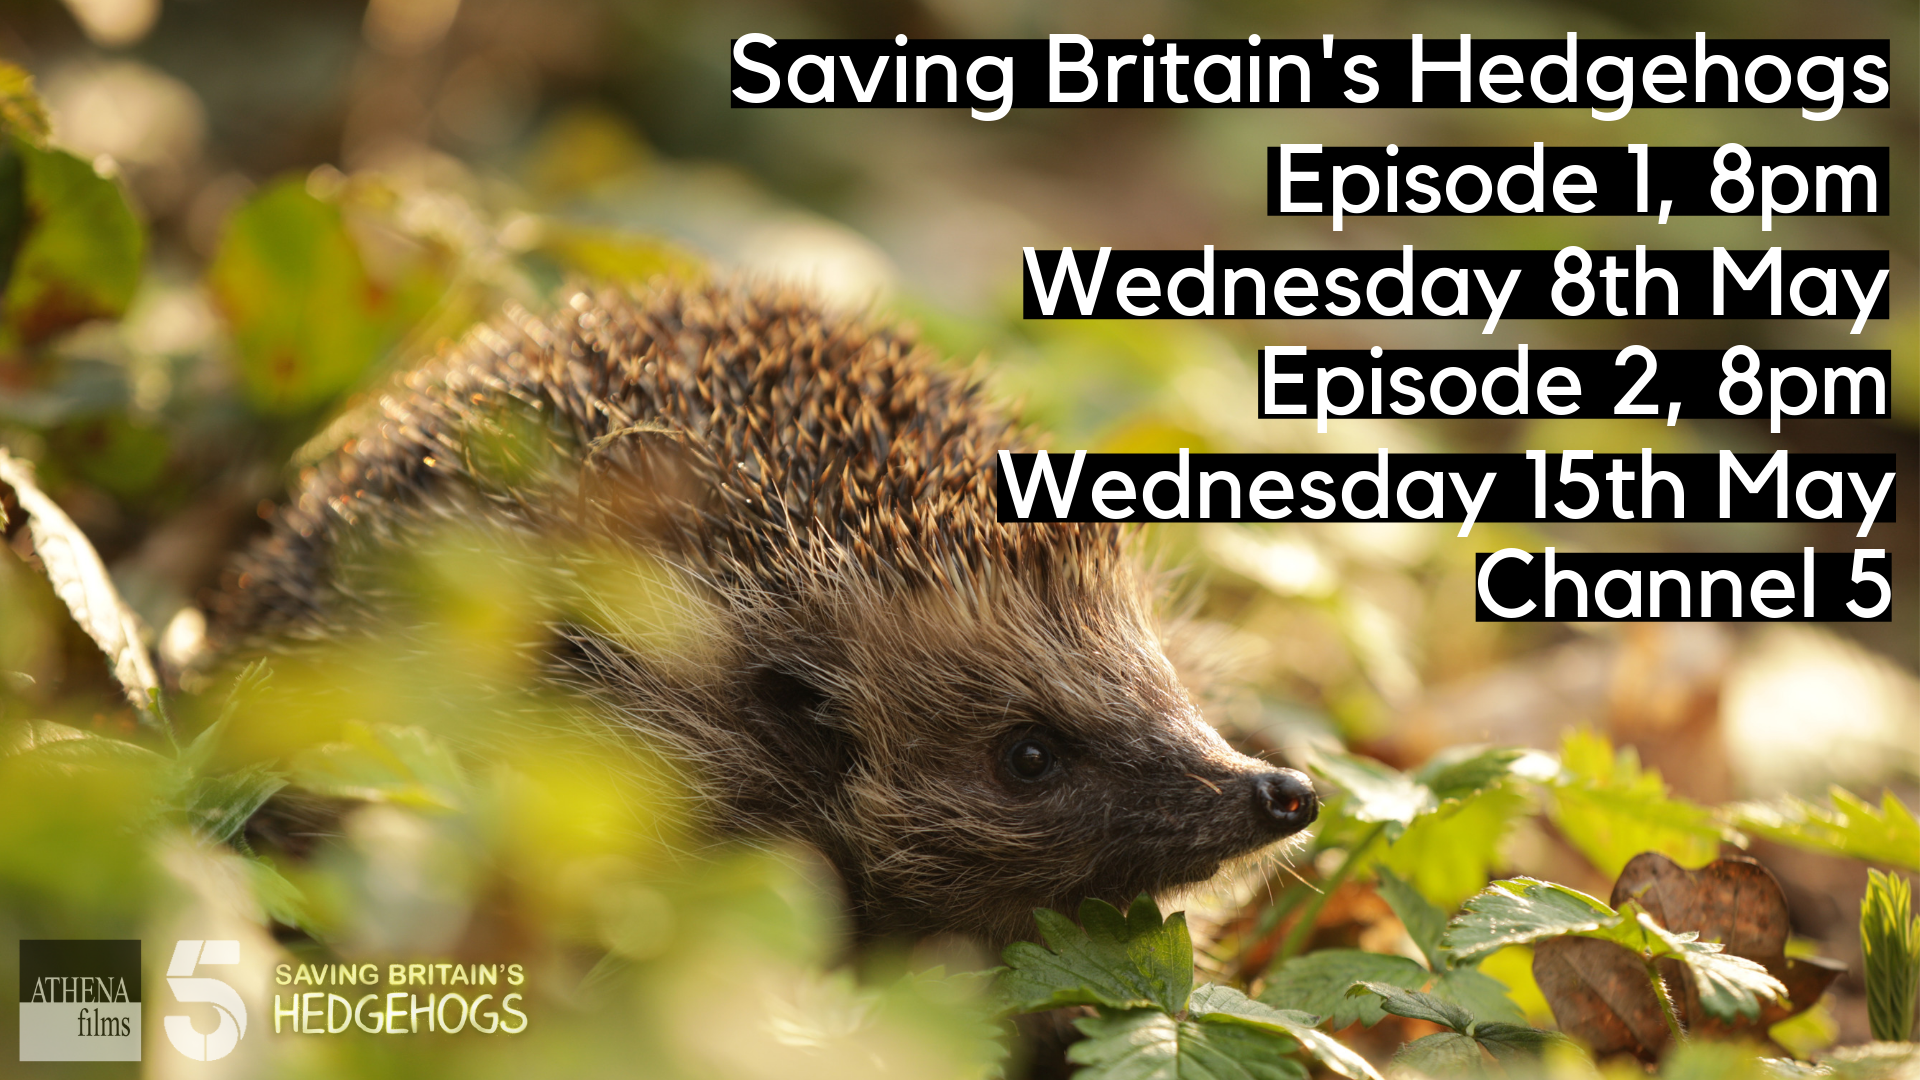 Don't Miss 'Saving Britain's Hedgehogs' with Steve Backshall and Dr Brian Mayon on Channel 5 tonight.